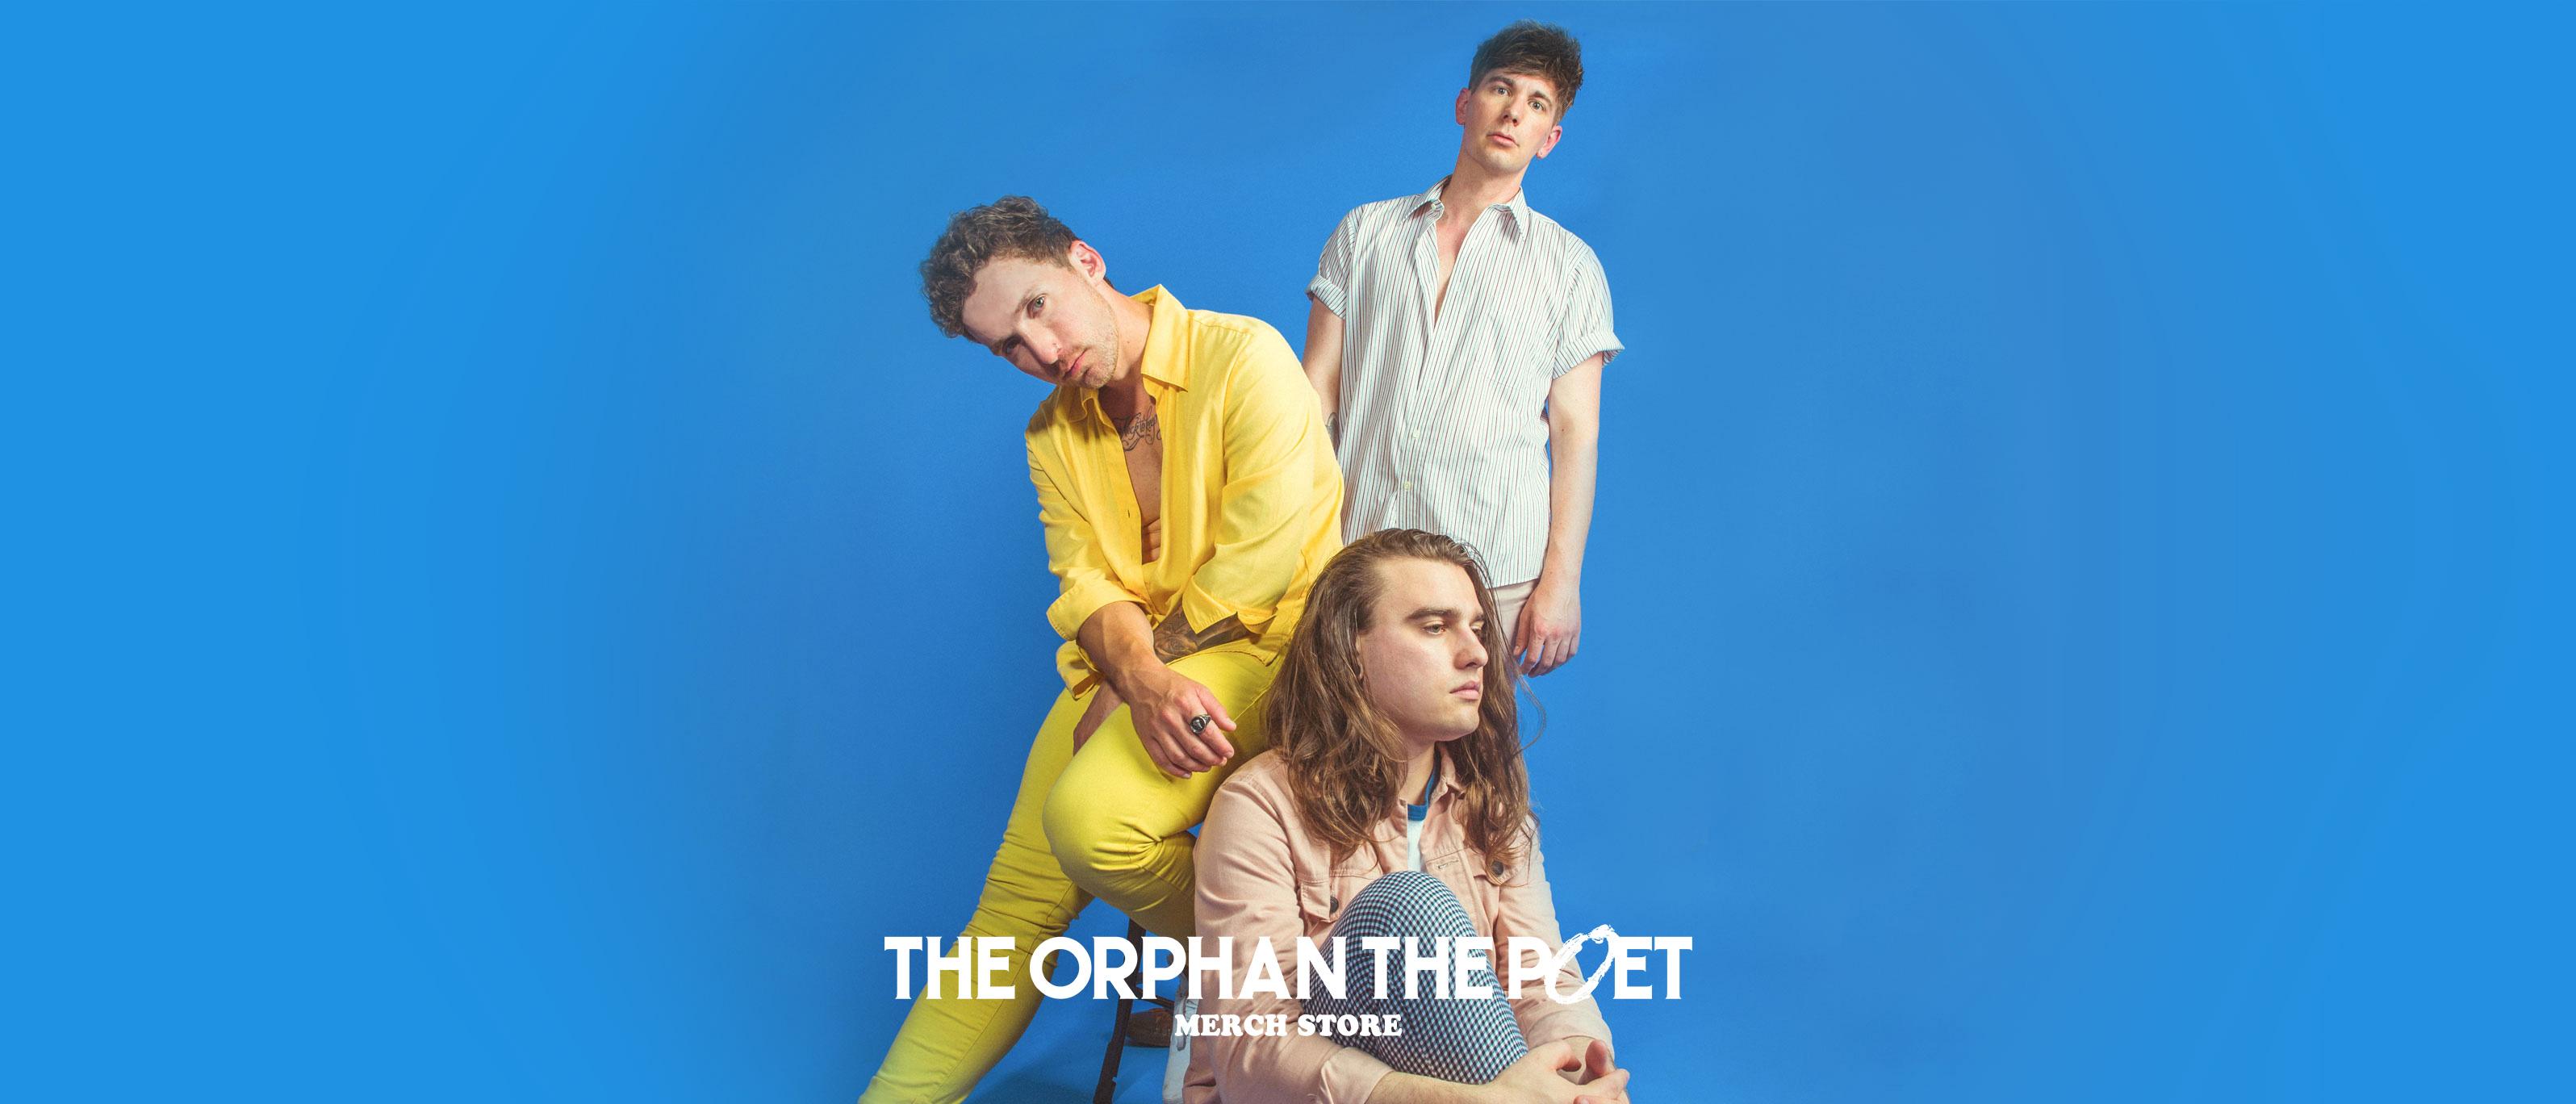 The Orphan The Poet Merch Store